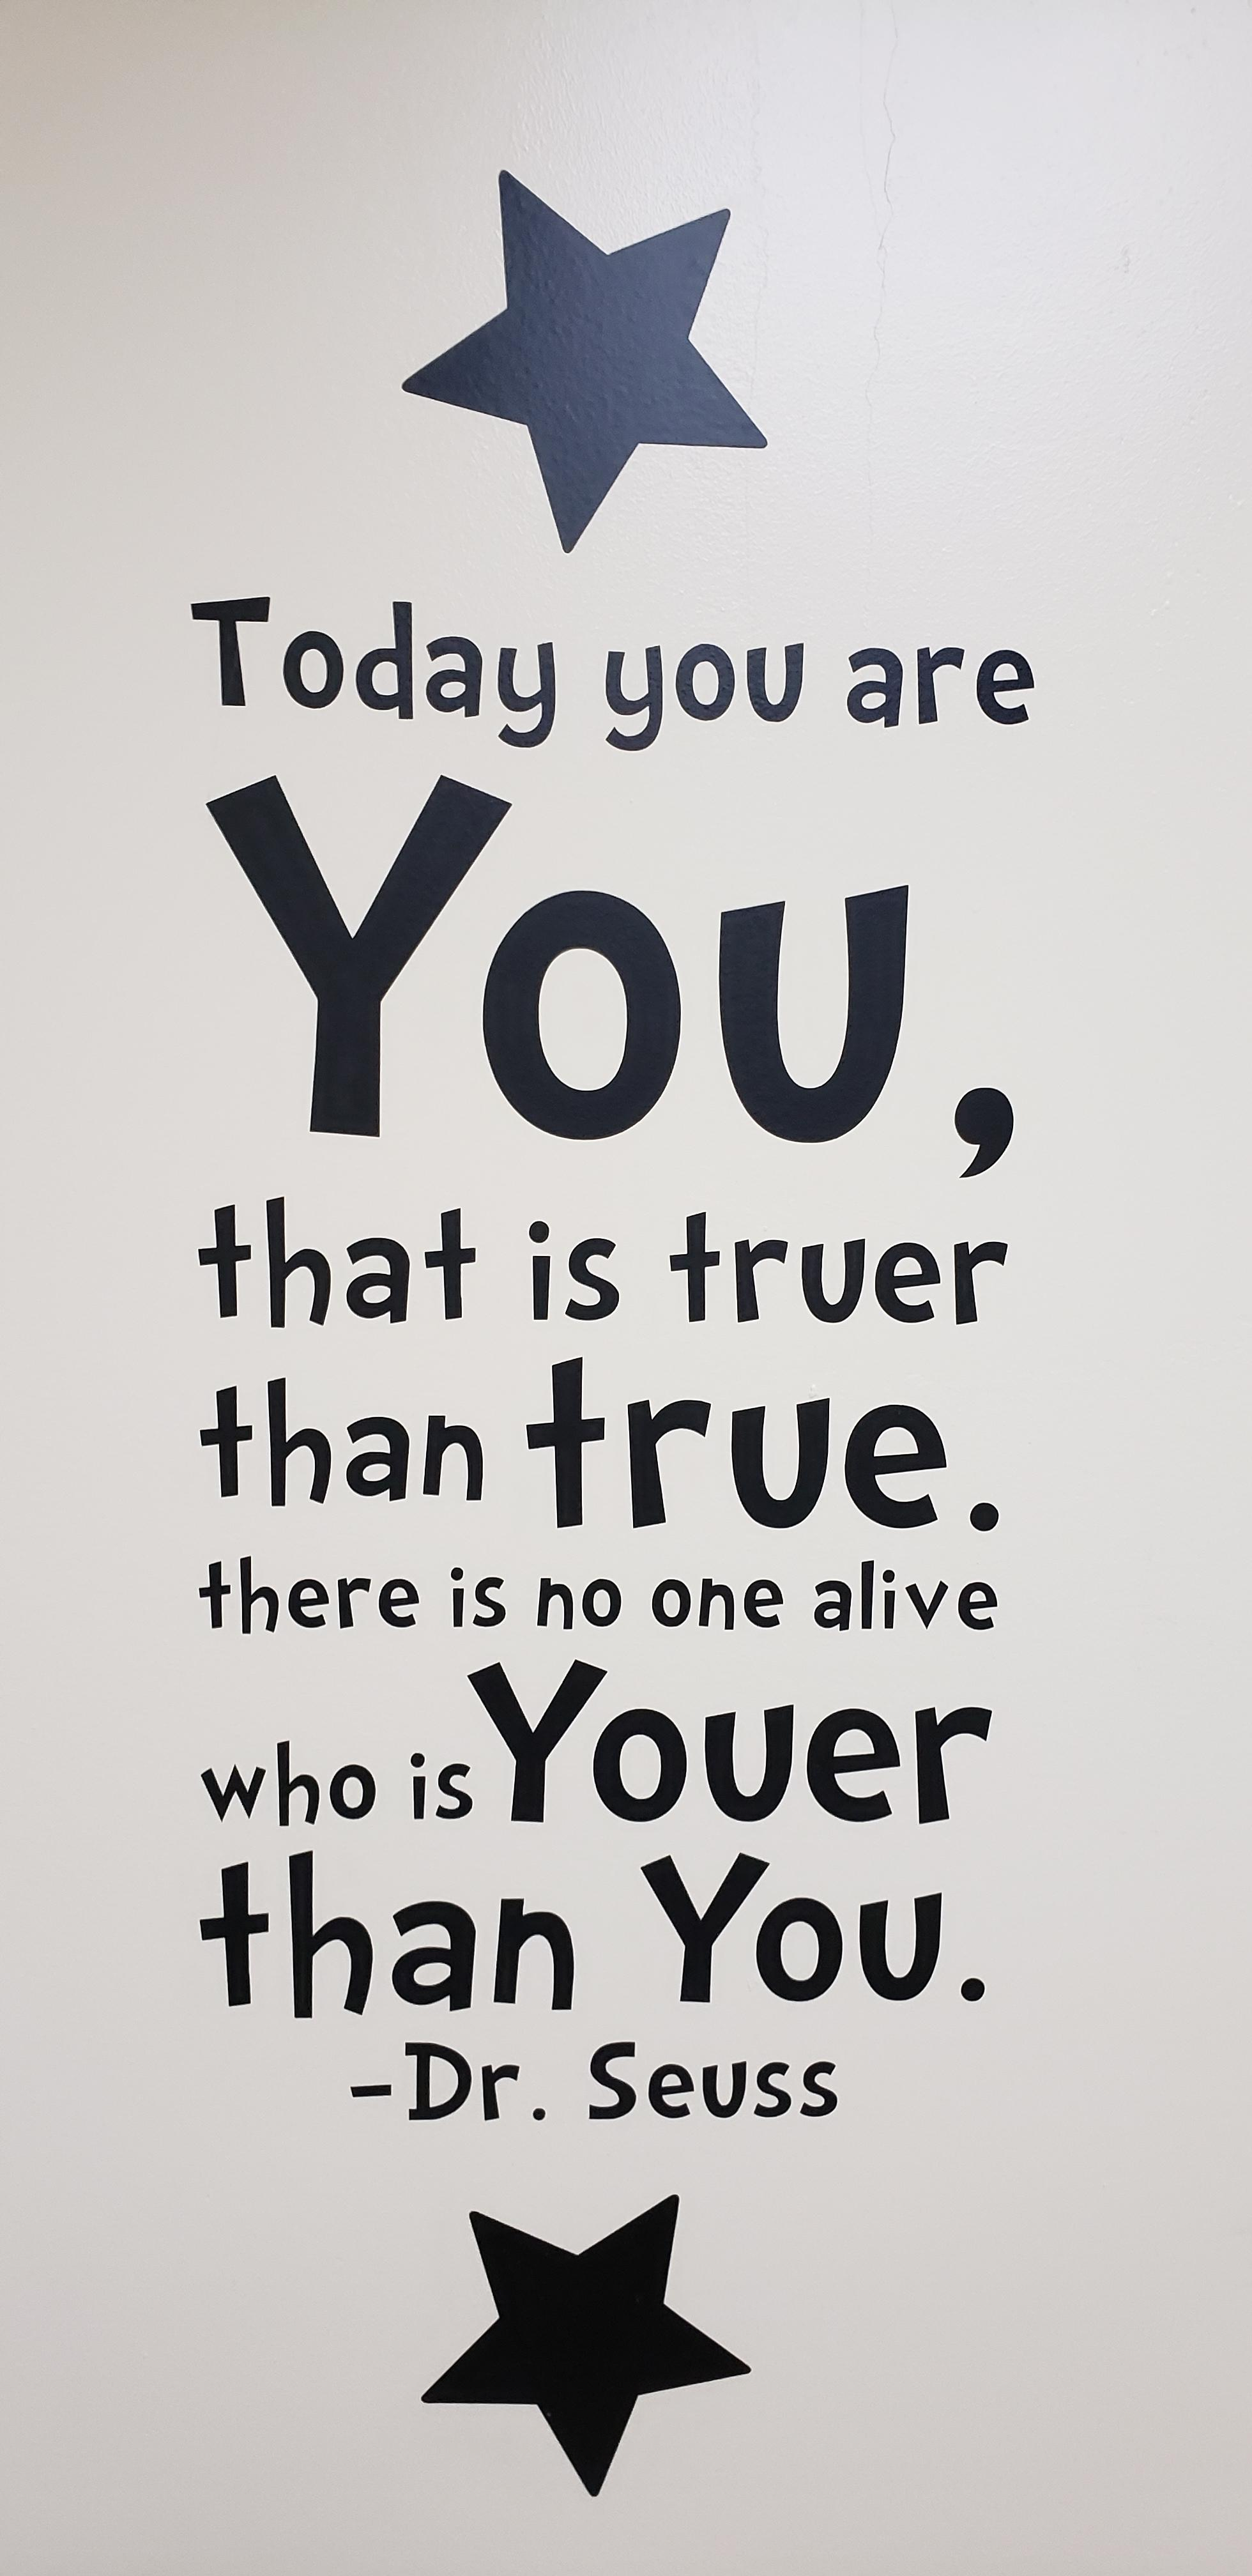 Dr. Seuss reminding us that we are all unique and special in our uniqueness – there is no one who is you-er than you [4032×1960]